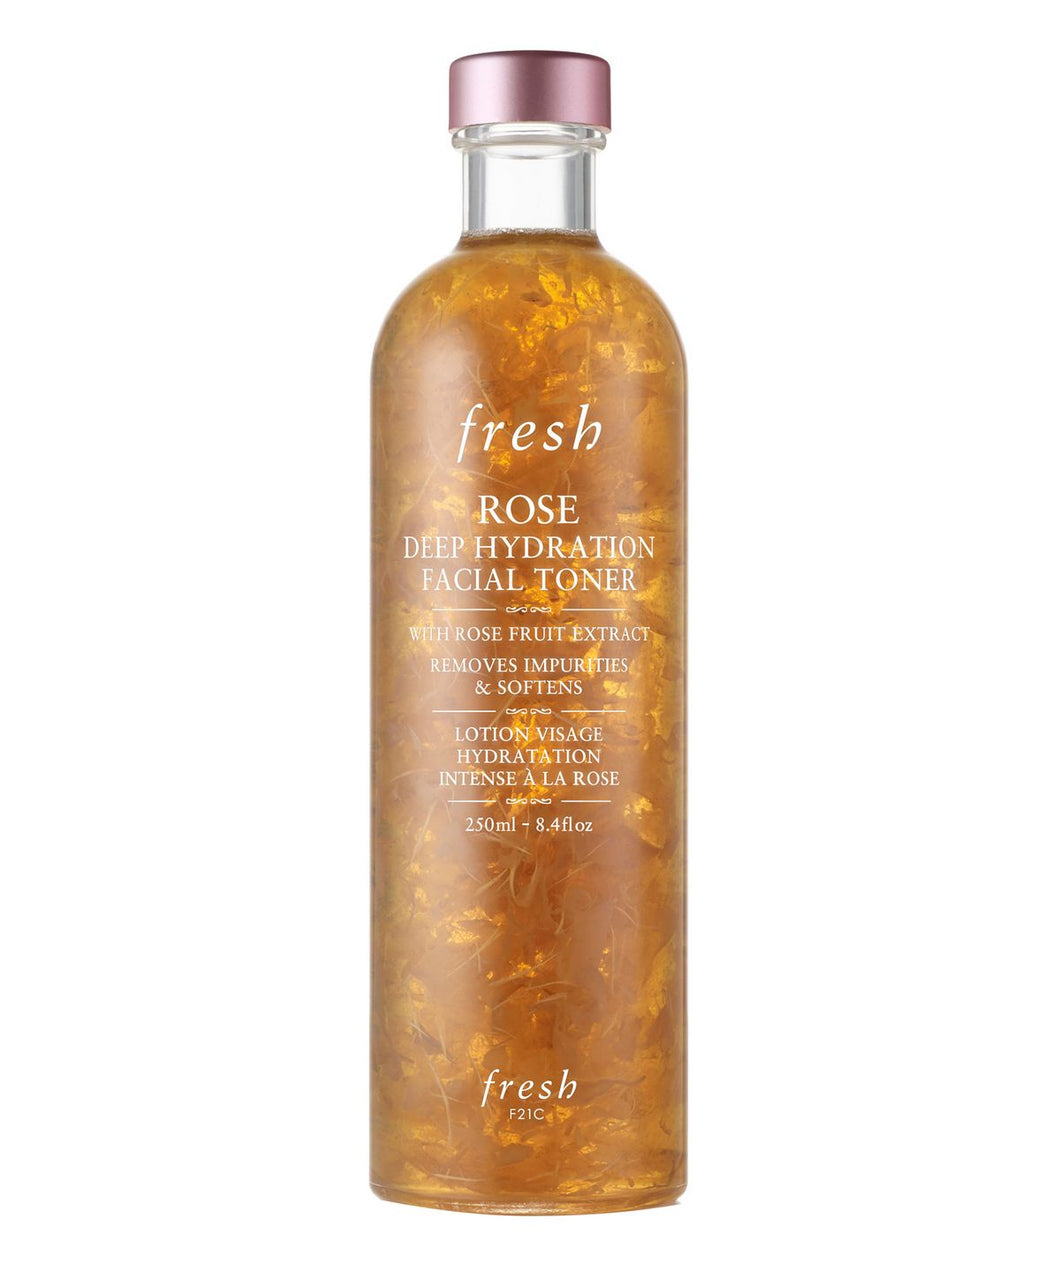 Rose Deep Hydration Facial Toner by Fresh in UAE at Shopey